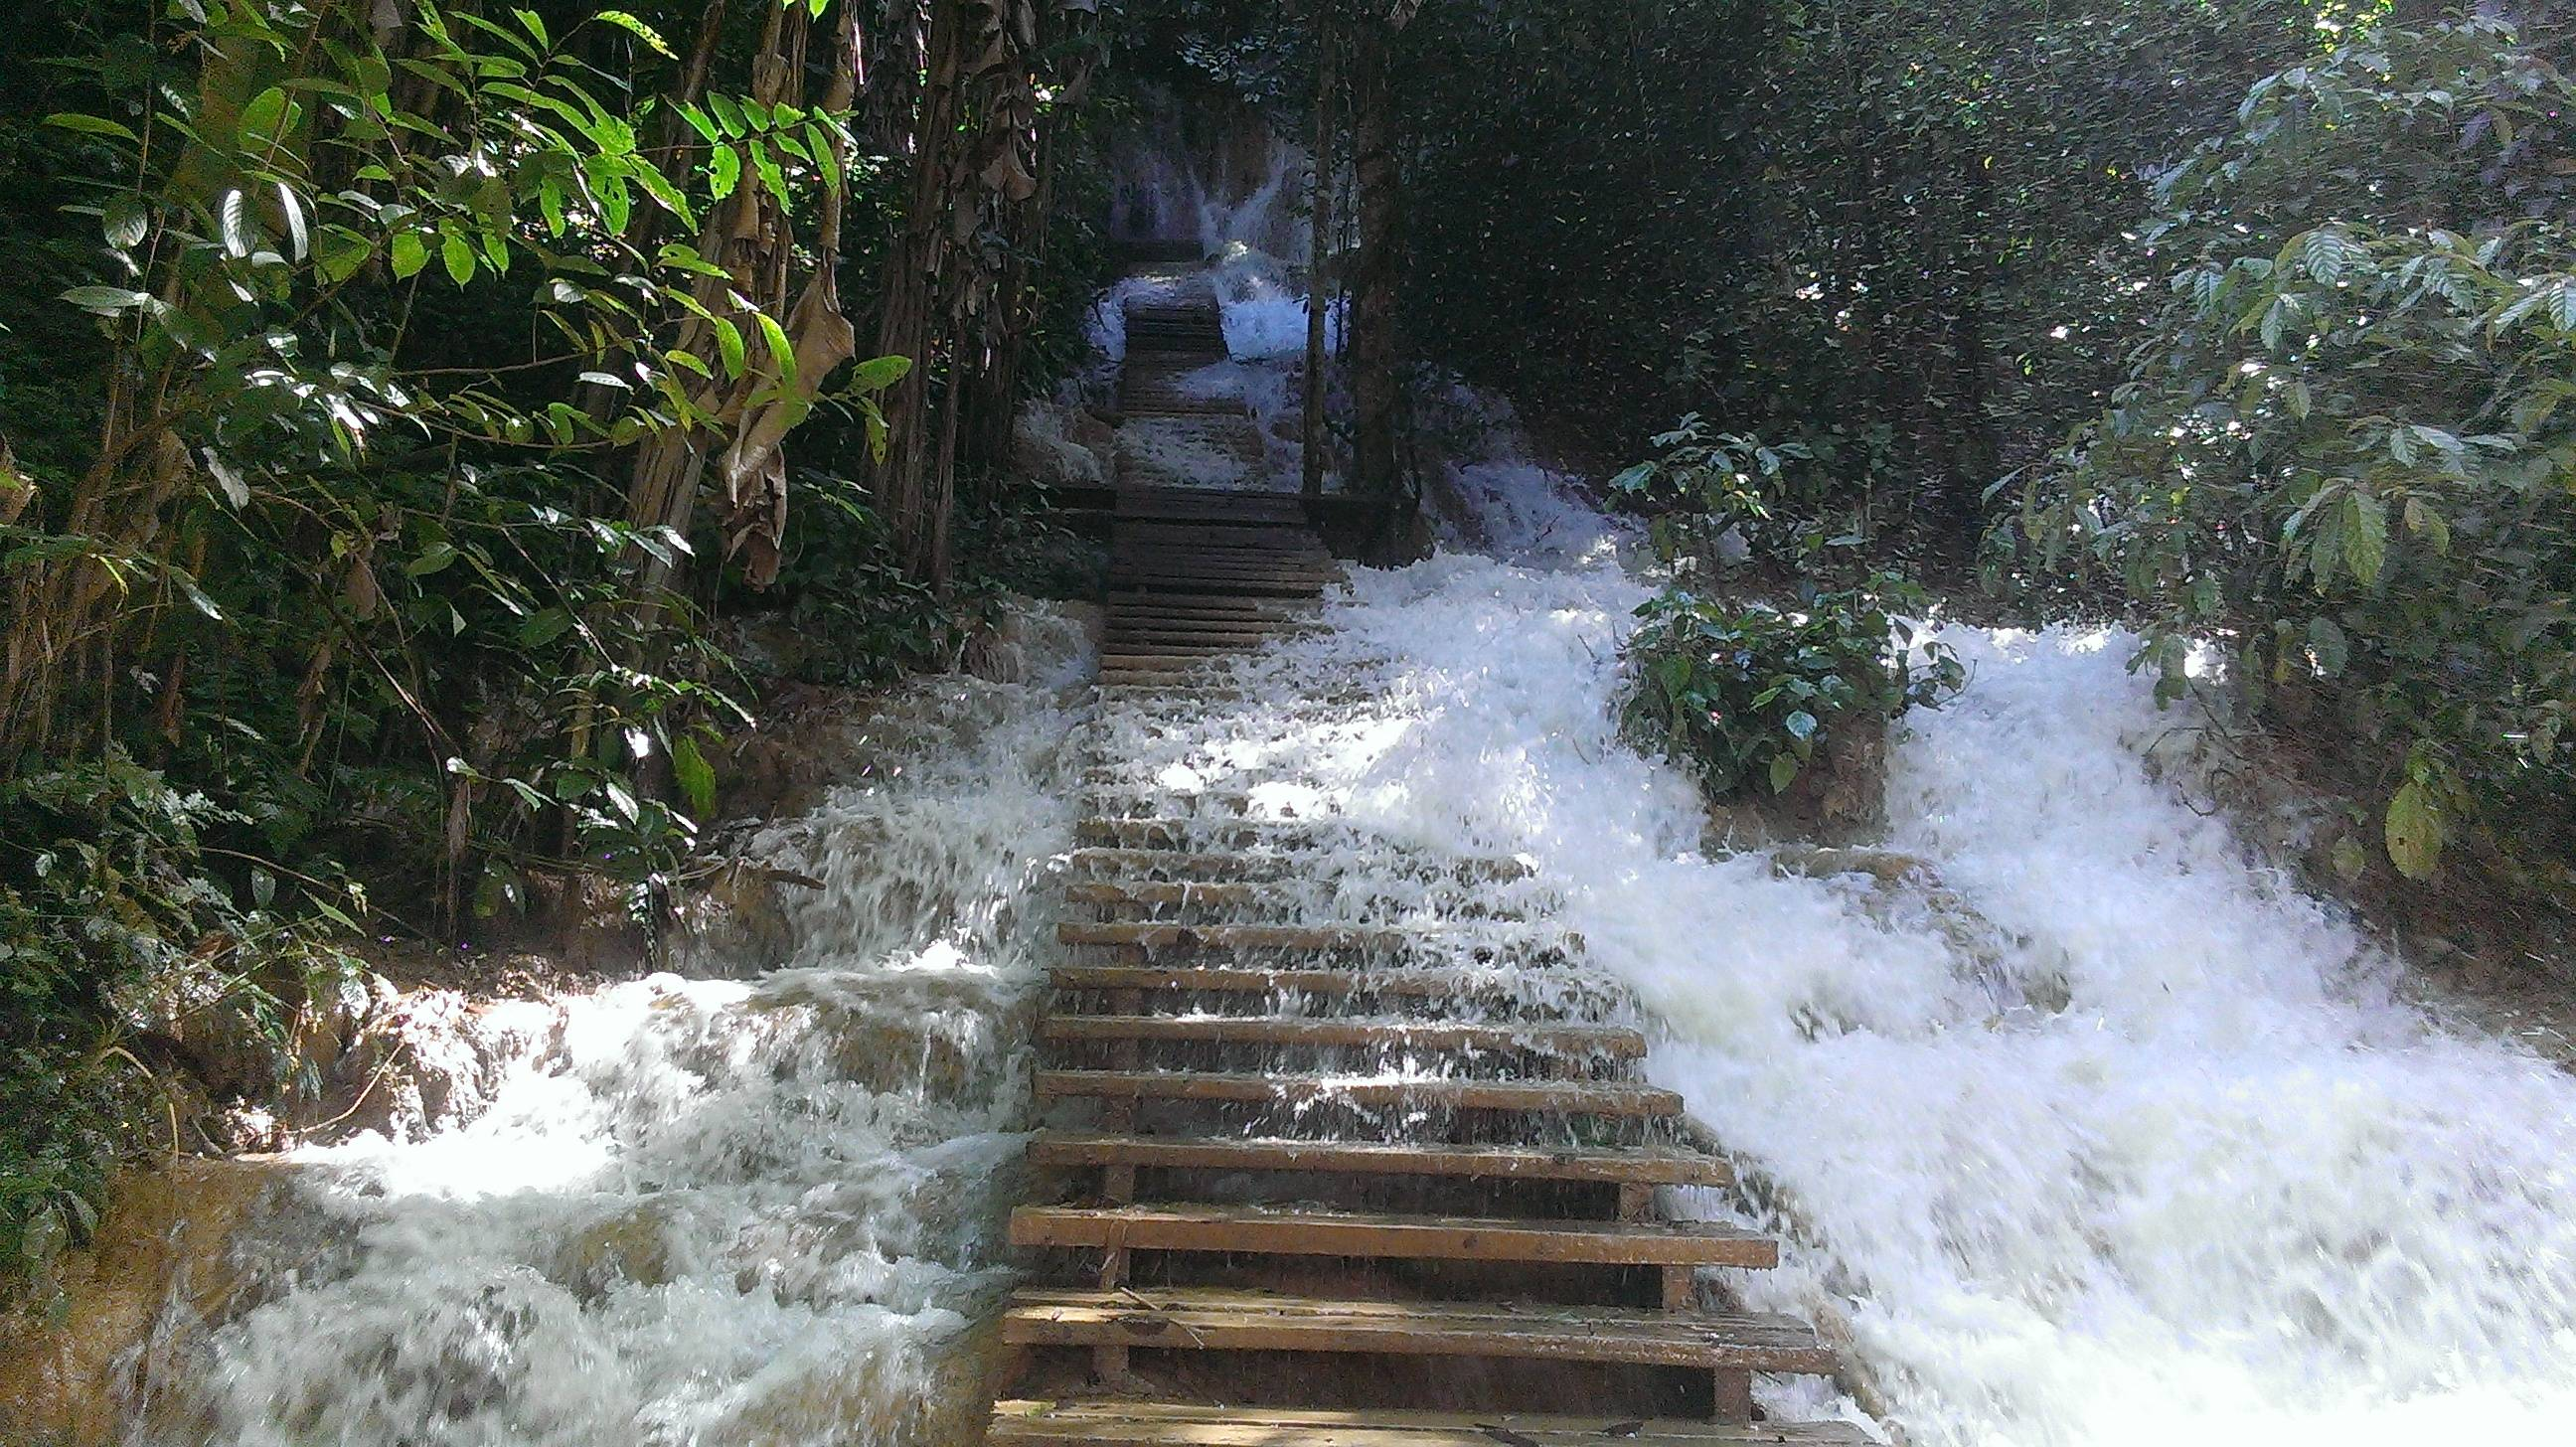 Flooded stairs at Luang Prabang, Laos